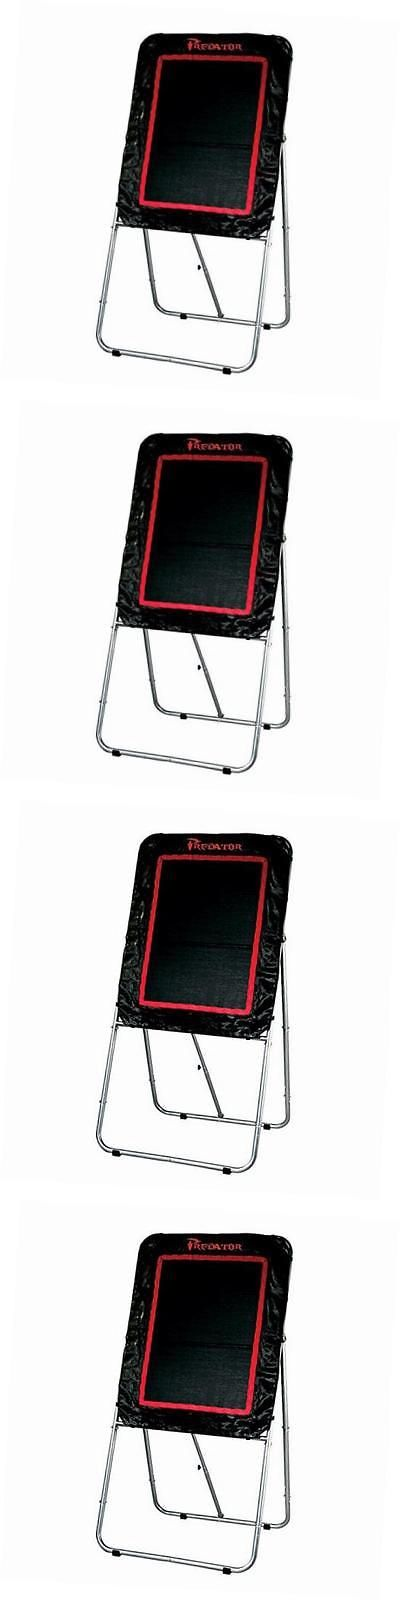 Other Lacrosse 16043: Sports Lacrosse Rebounder - Lax Wall -> BUY IT NOW ONLY: $242.35 on eBay!